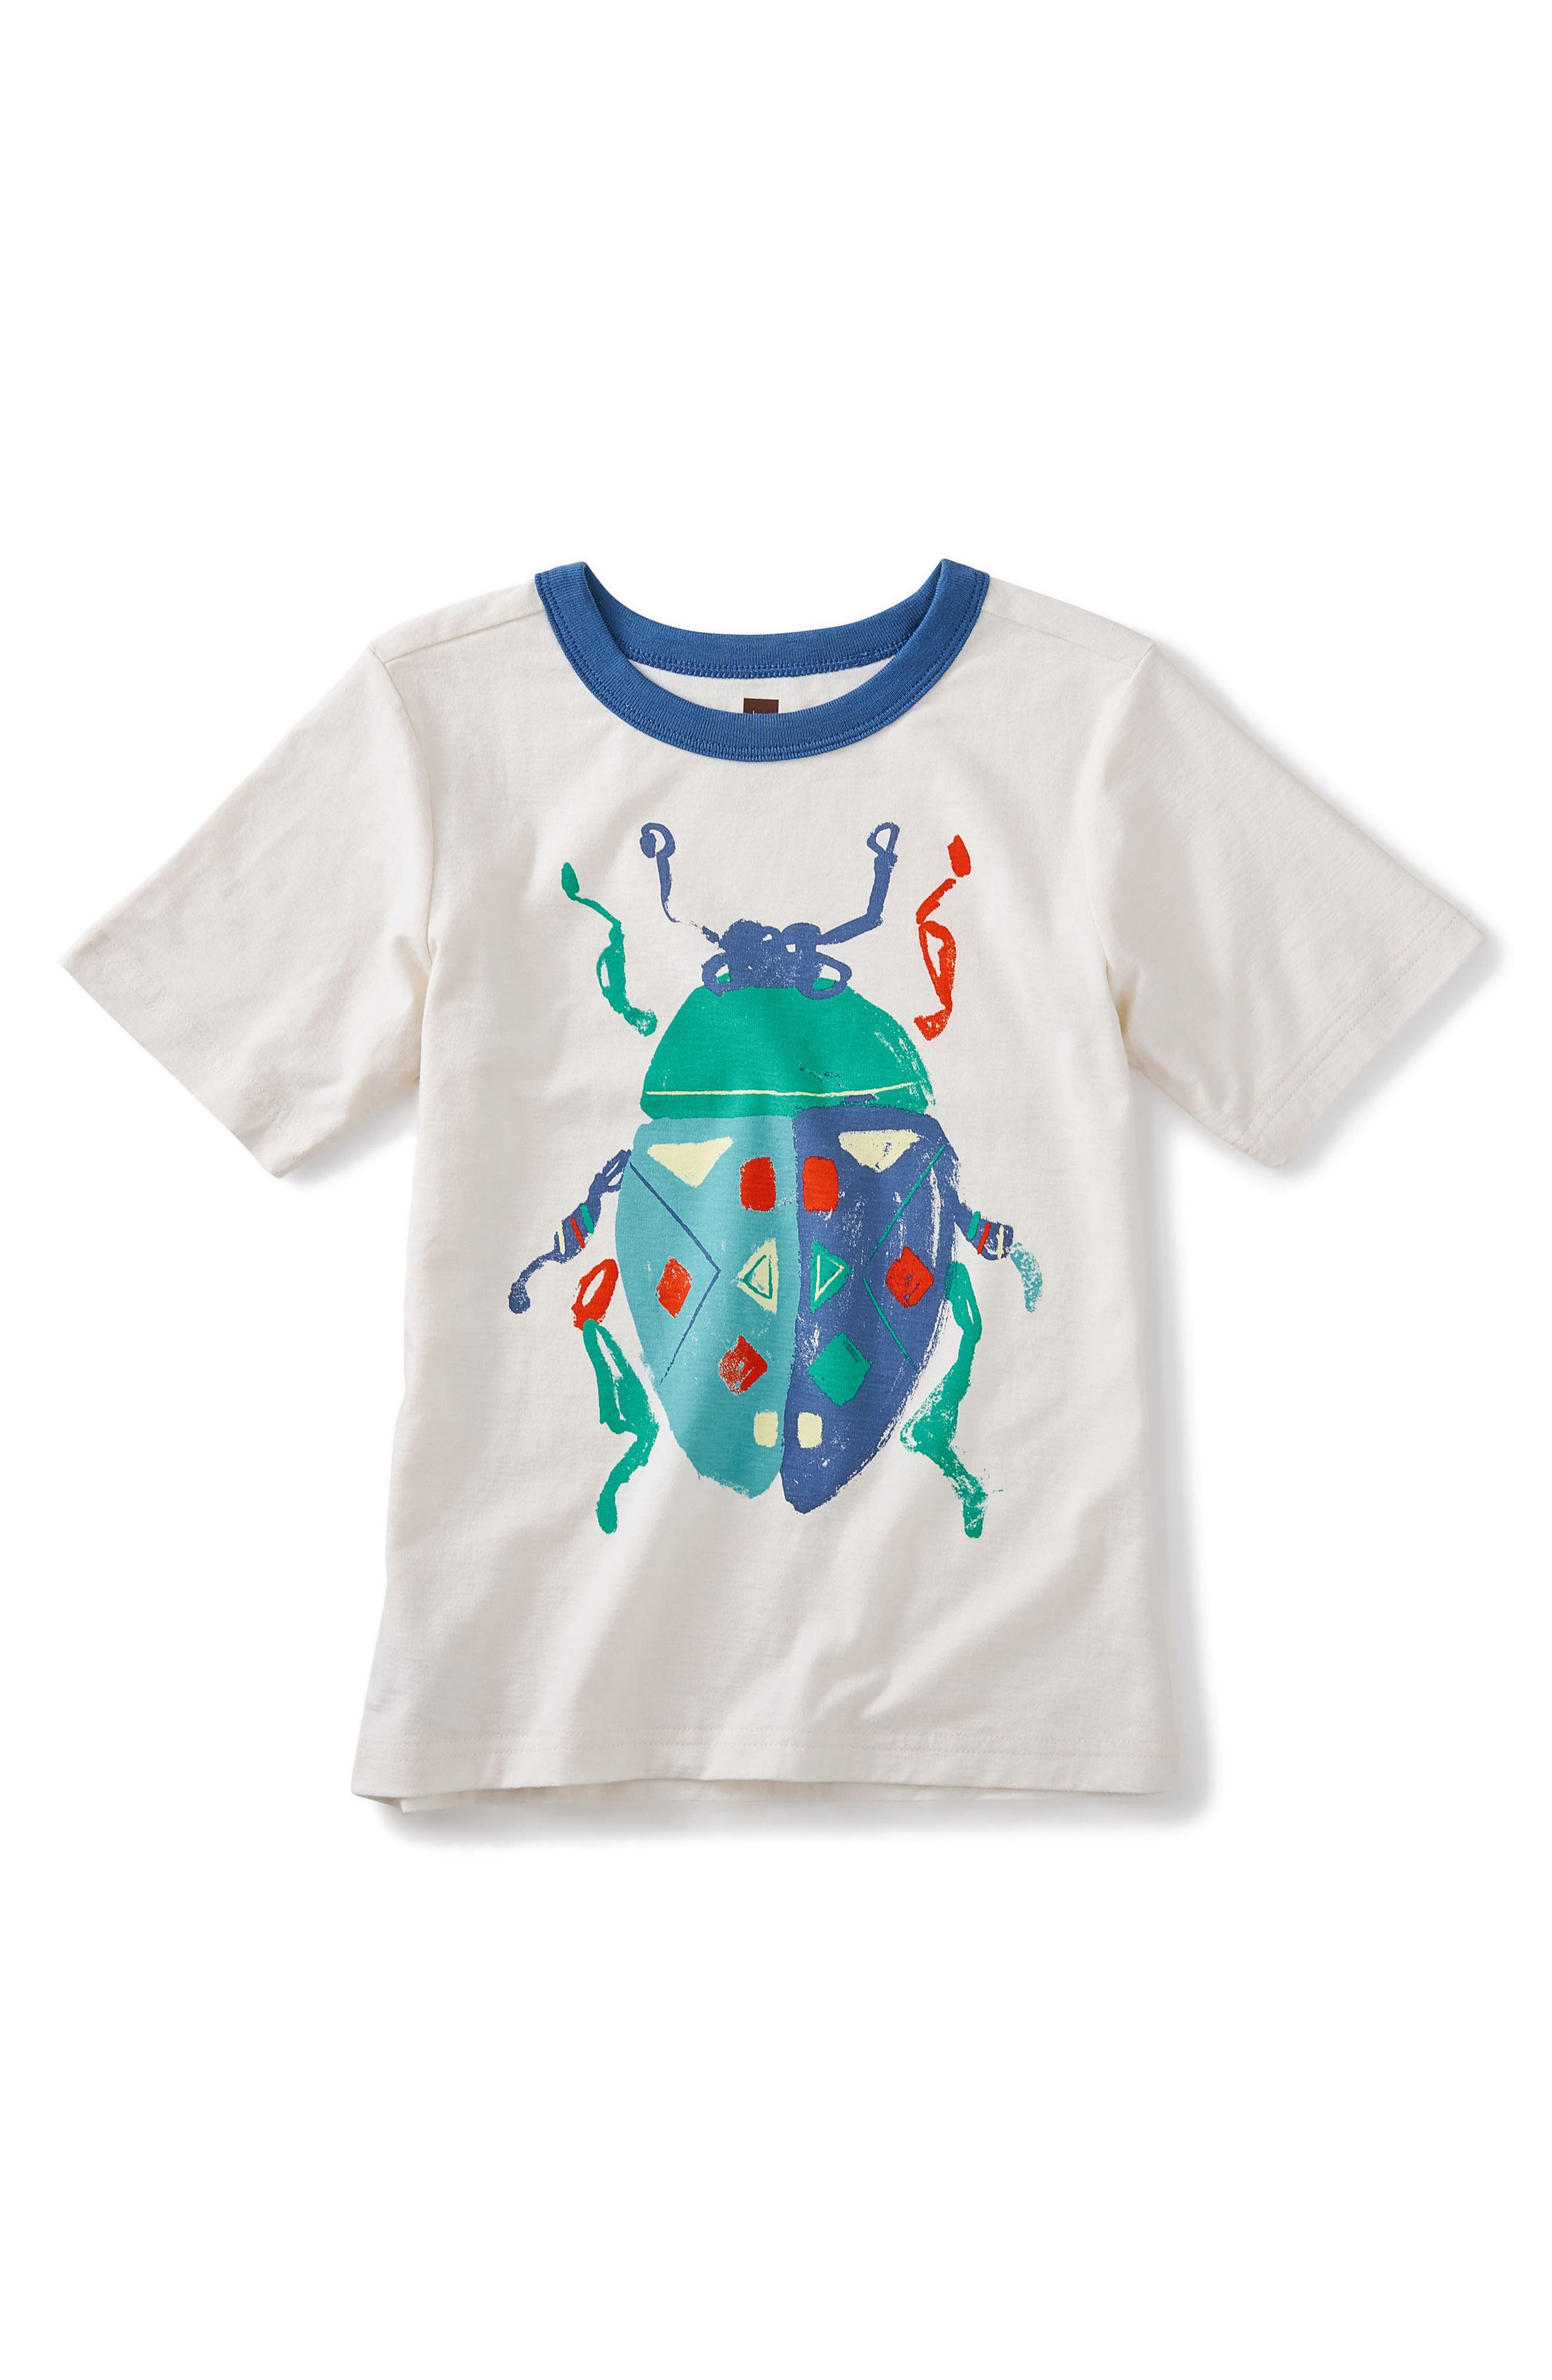 Beetle Graphic T-Shirt,                             Main thumbnail 1, color,                             103